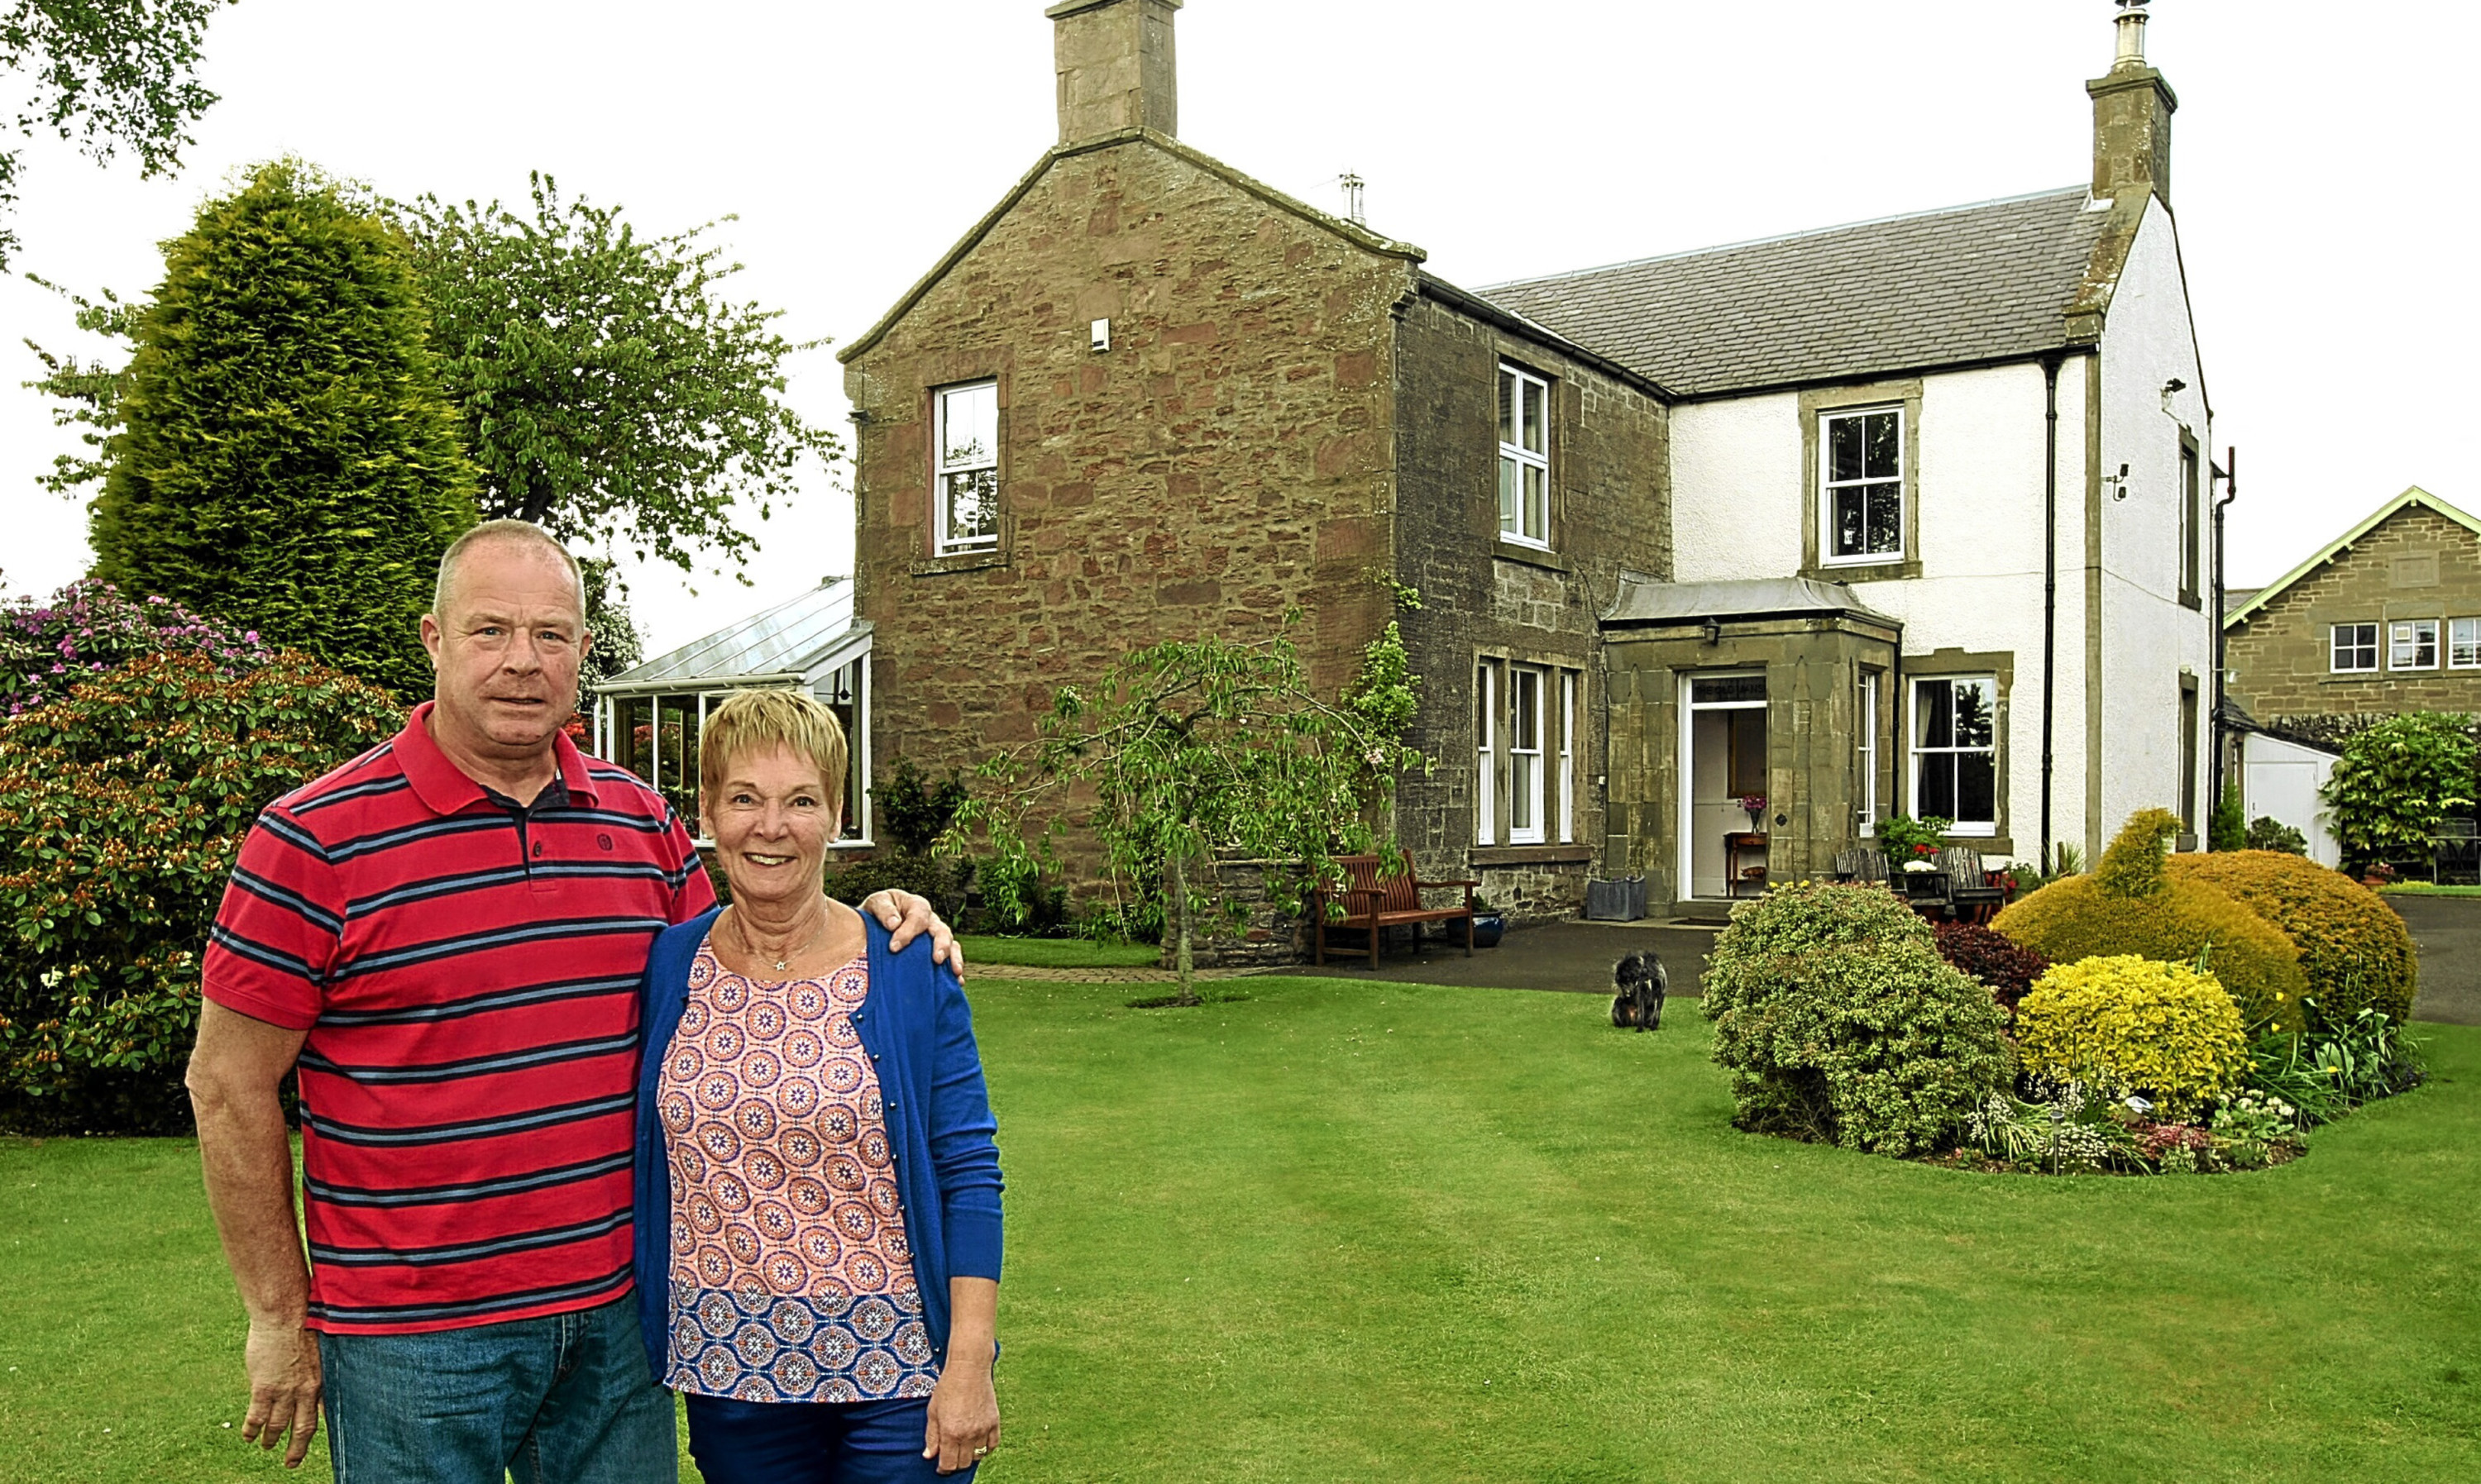 Graham and Liz Haig at the Old Manse